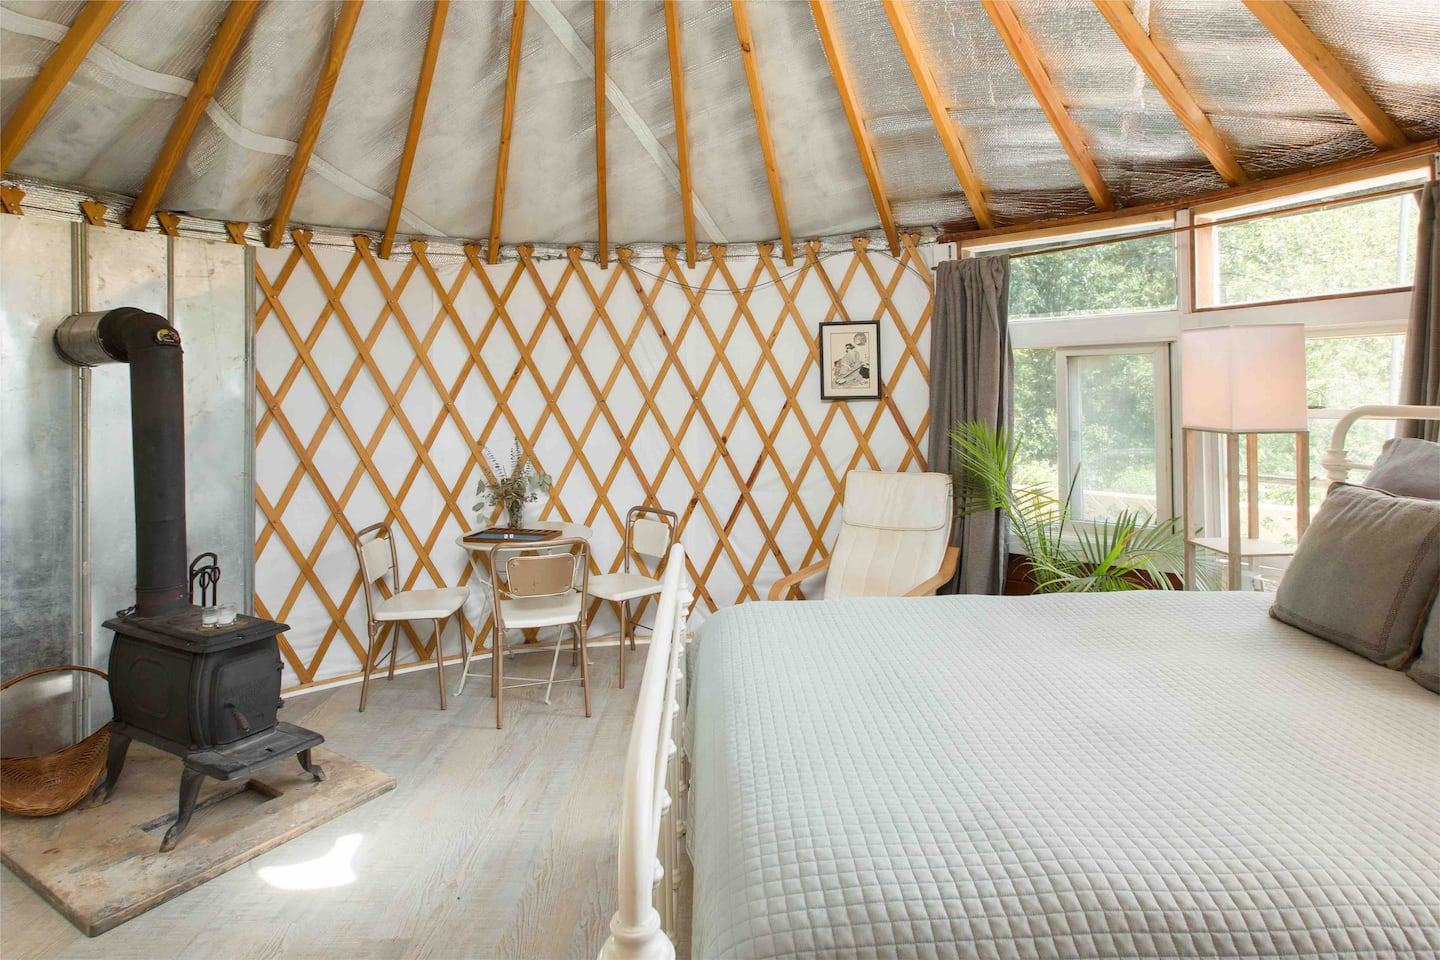 Unique yurt Airbnb in Asheville